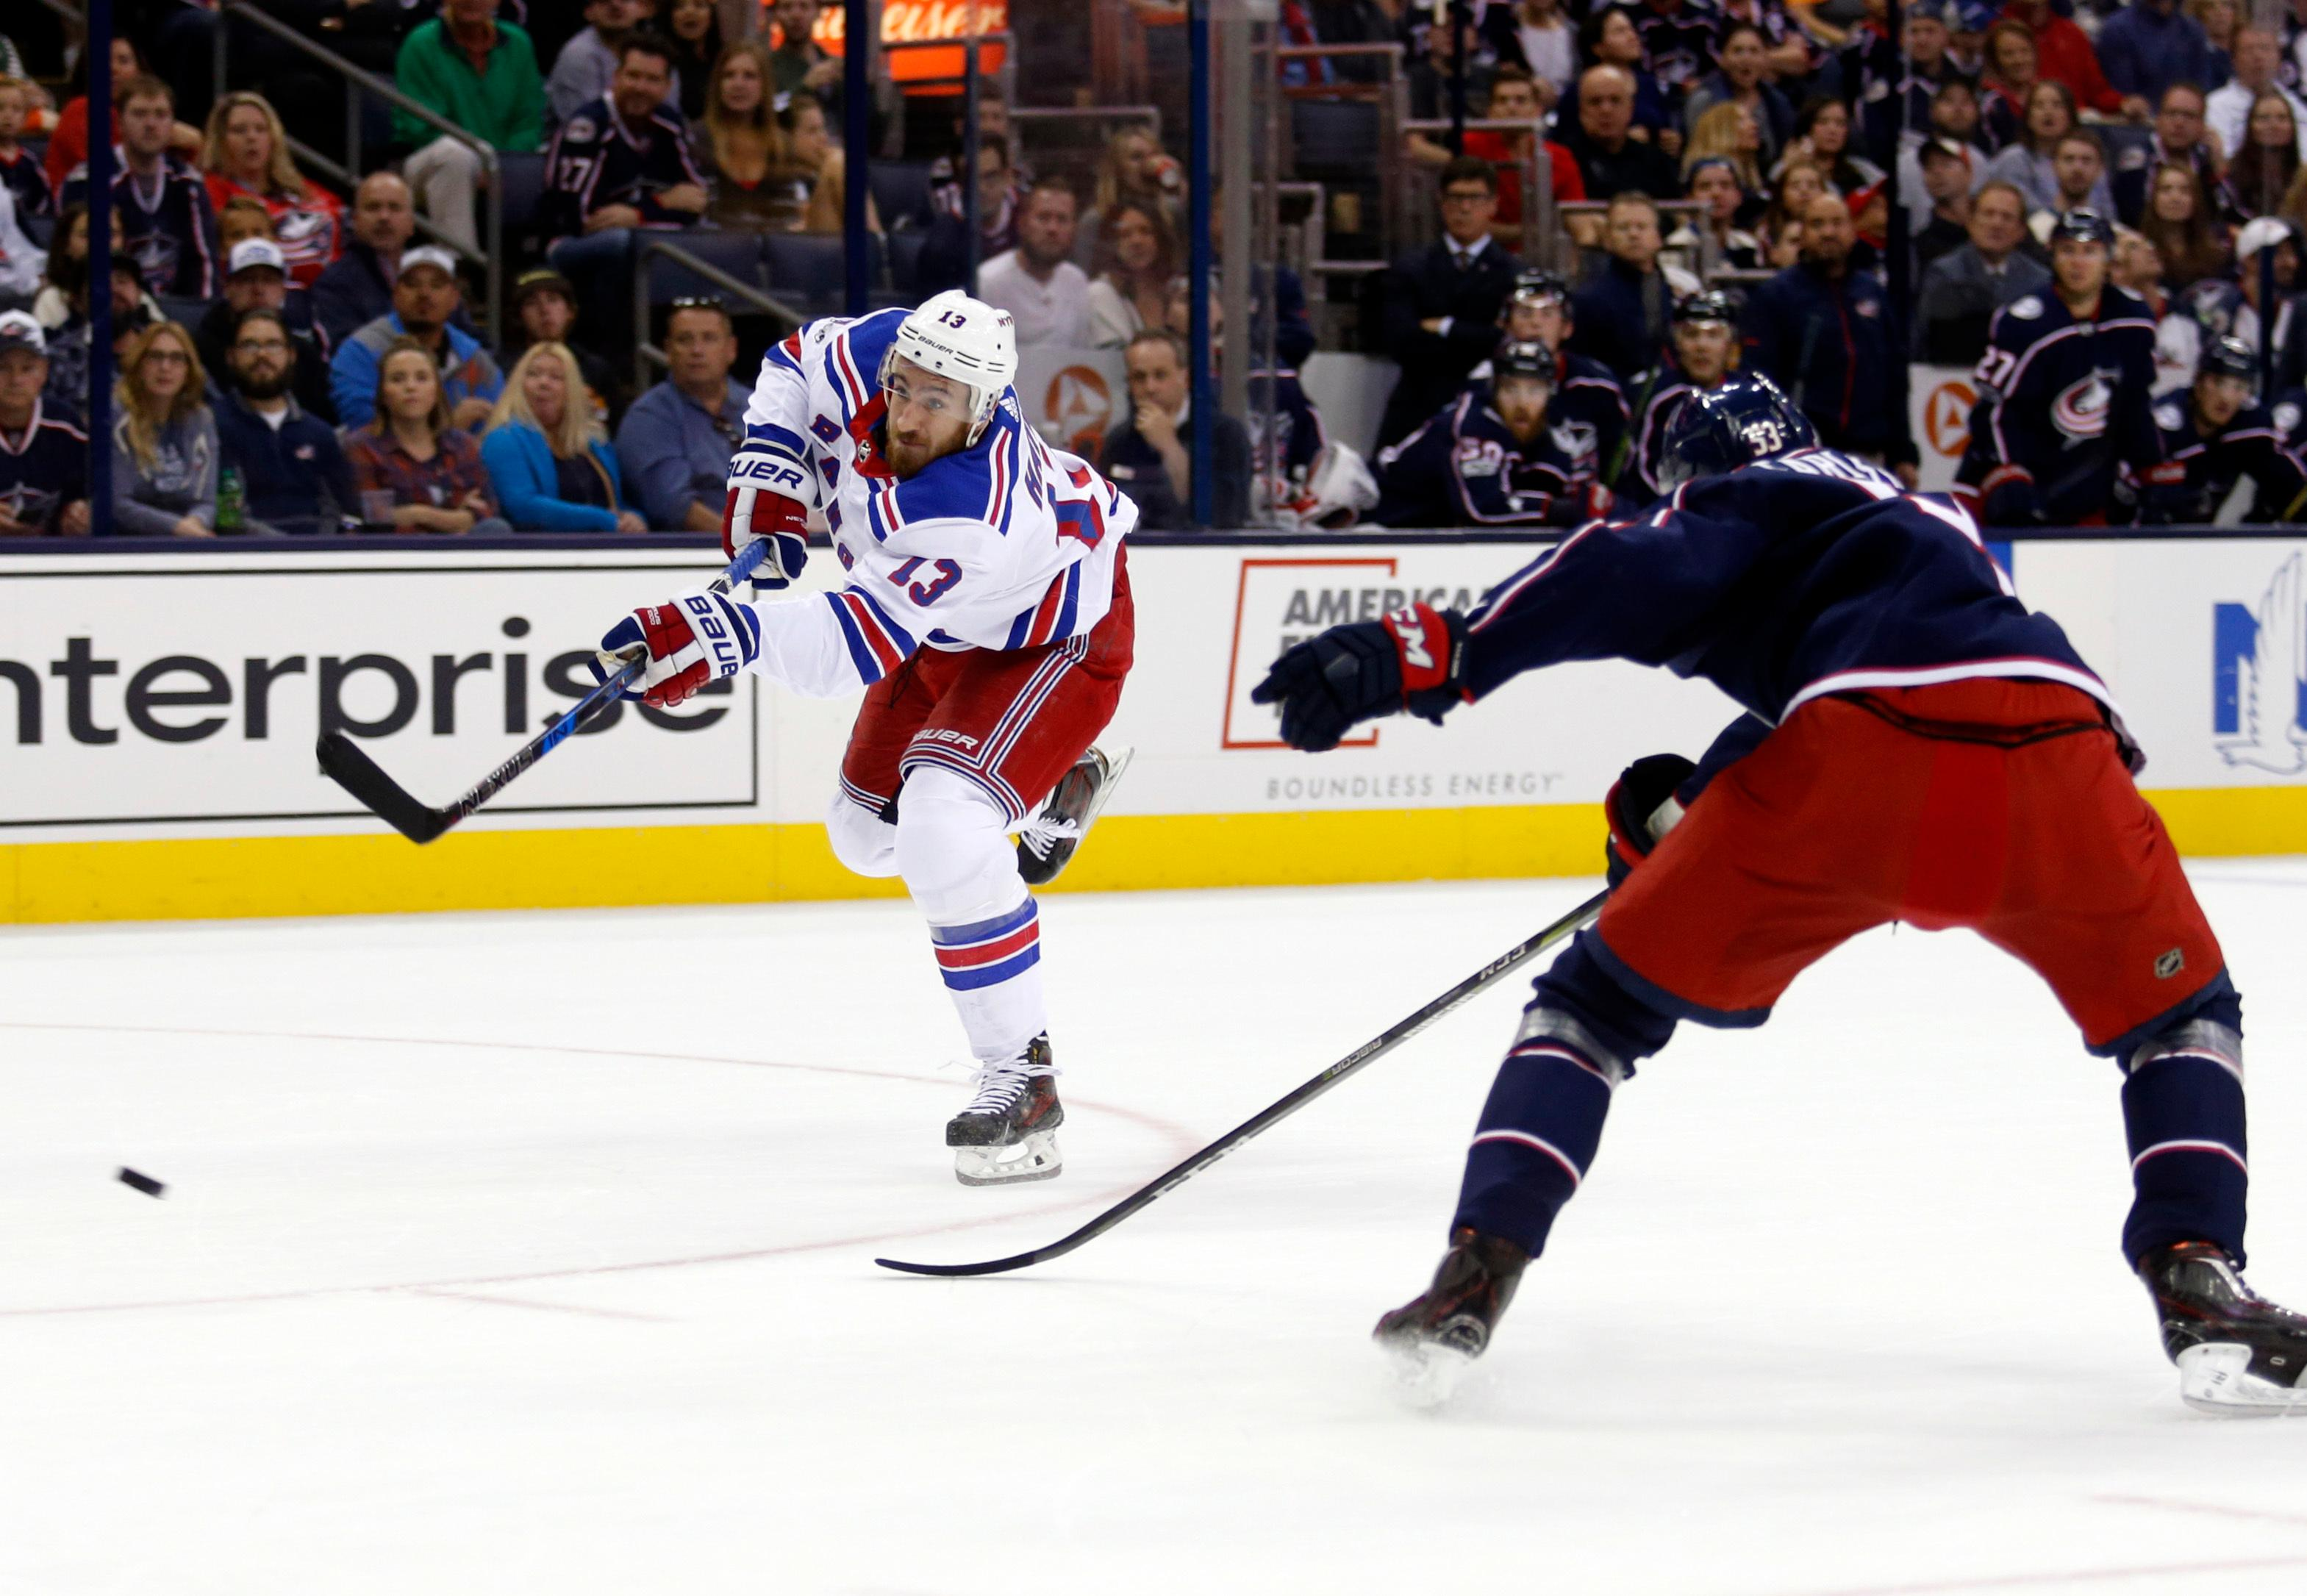 New York Rangers forward Kevin Hayes, left, shoots the puck in front of Columbus Blue Jackets defenseman Gabriel Carlsson, of Sweden, during the first period of an NHL hockey game in Columbus, Ohio, Friday, Oct. 13, 2017. Hayes scored on the play. (AP Photo/Paul Vernon)